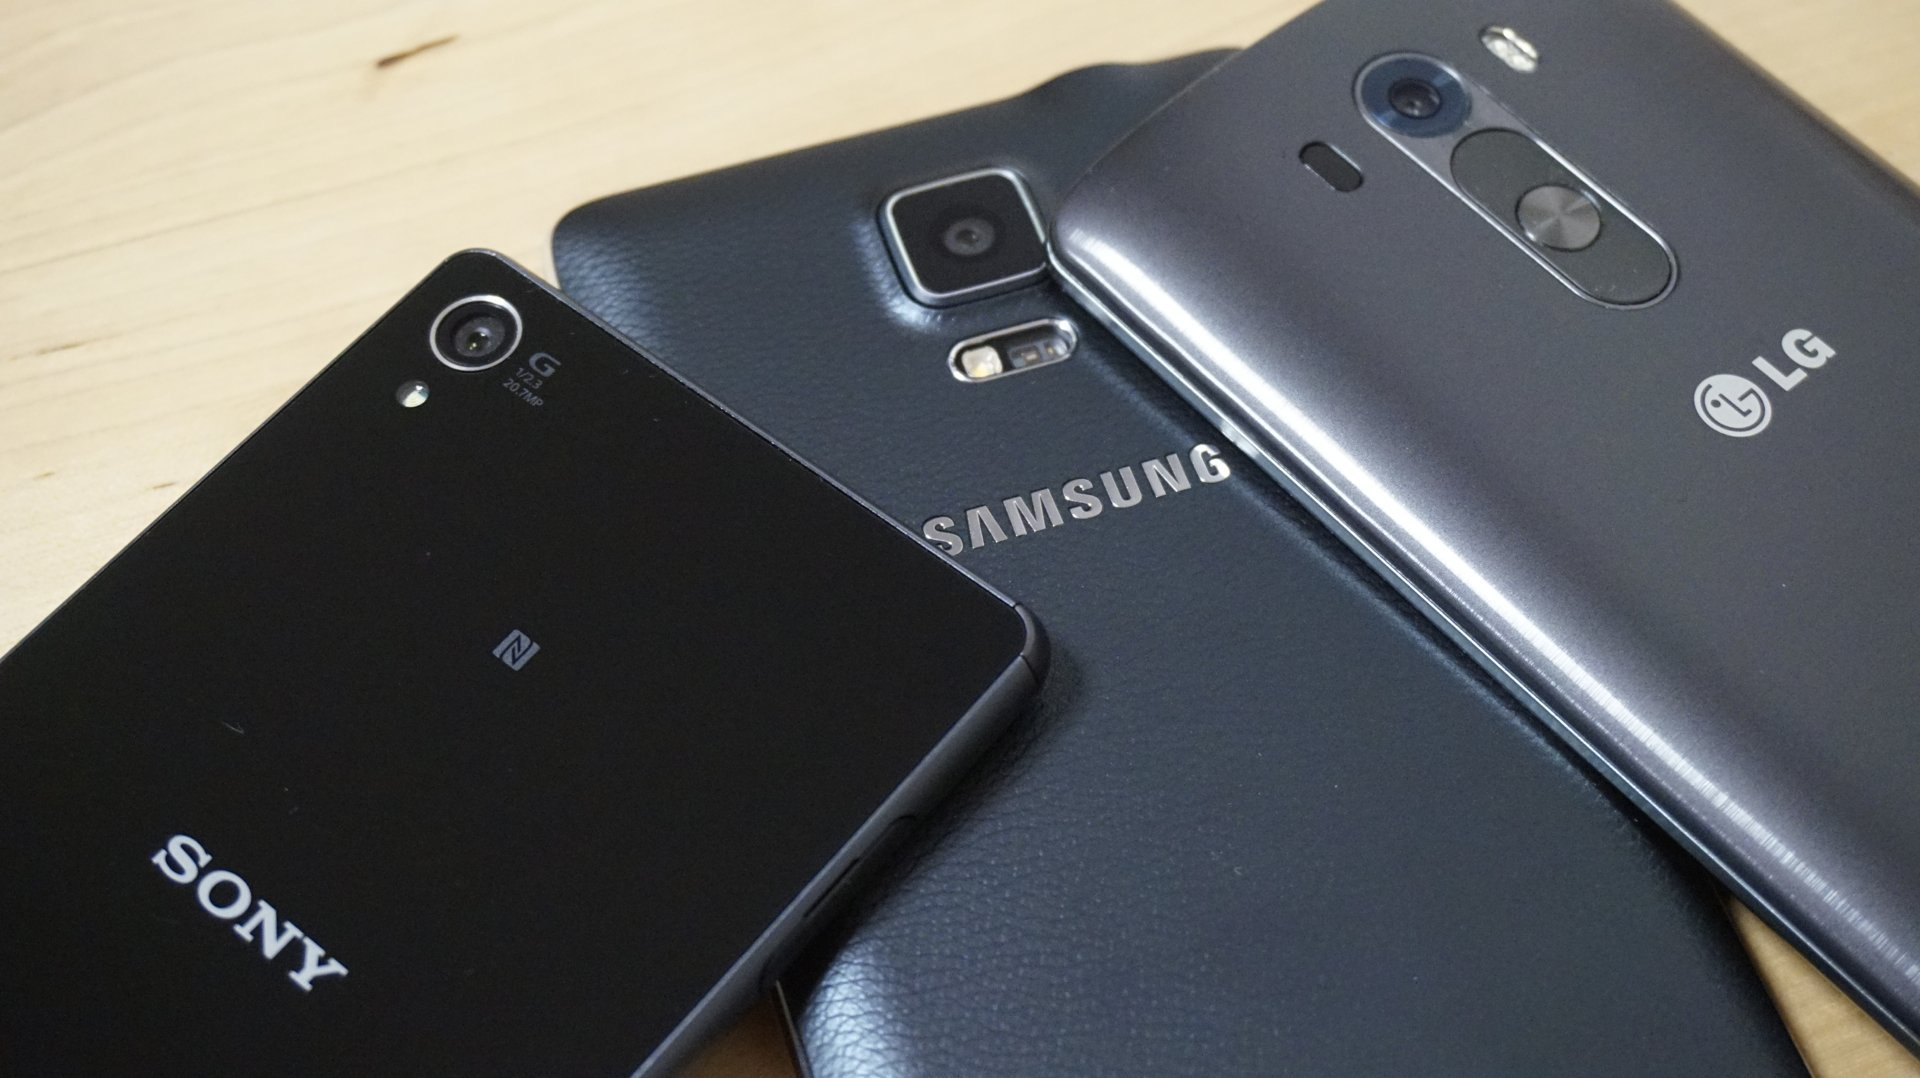 Galaxy Note 4, Xperia Z3 et LG G3 : le face-à-face photo